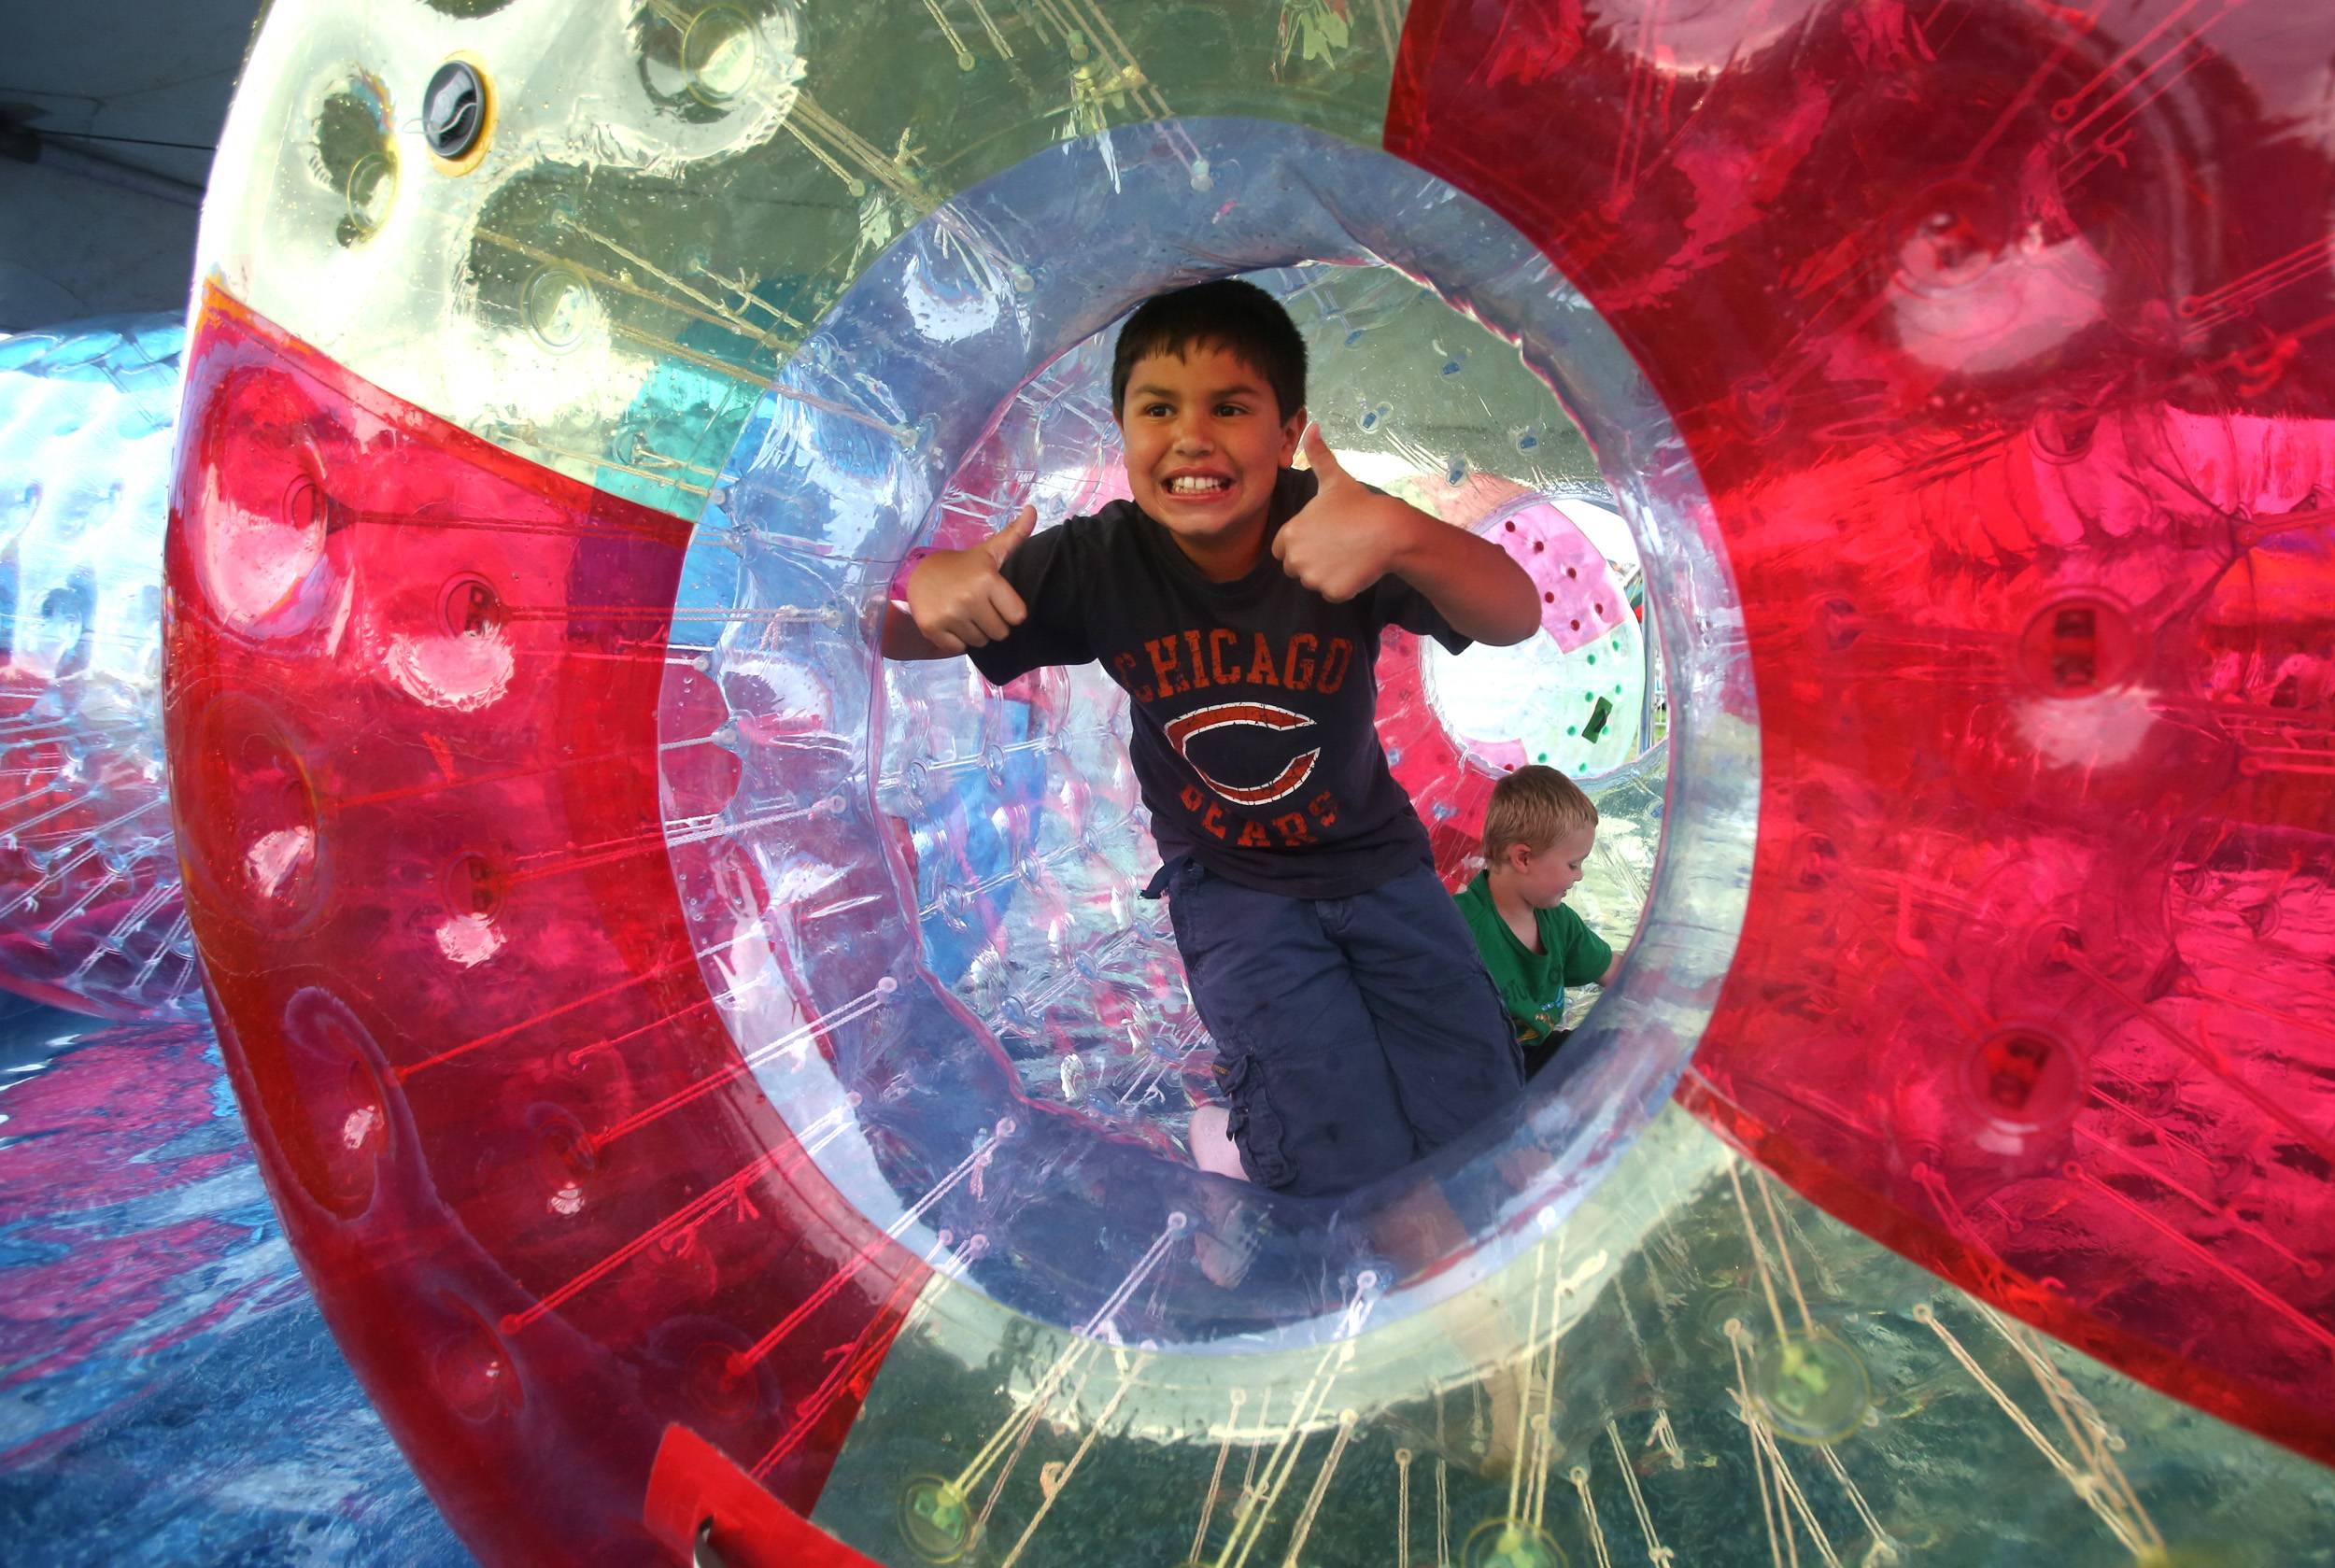 Daniel White/dwhite@dailyherald.com Sam Casas, 10, of Glen Ellyn gives the thumbs-up on a Hamster Roller water wheel during Glendale Heights Fest in Camera Park. Matthew Beach, 5, of Glen Ellyn sits down in the back of the roller.